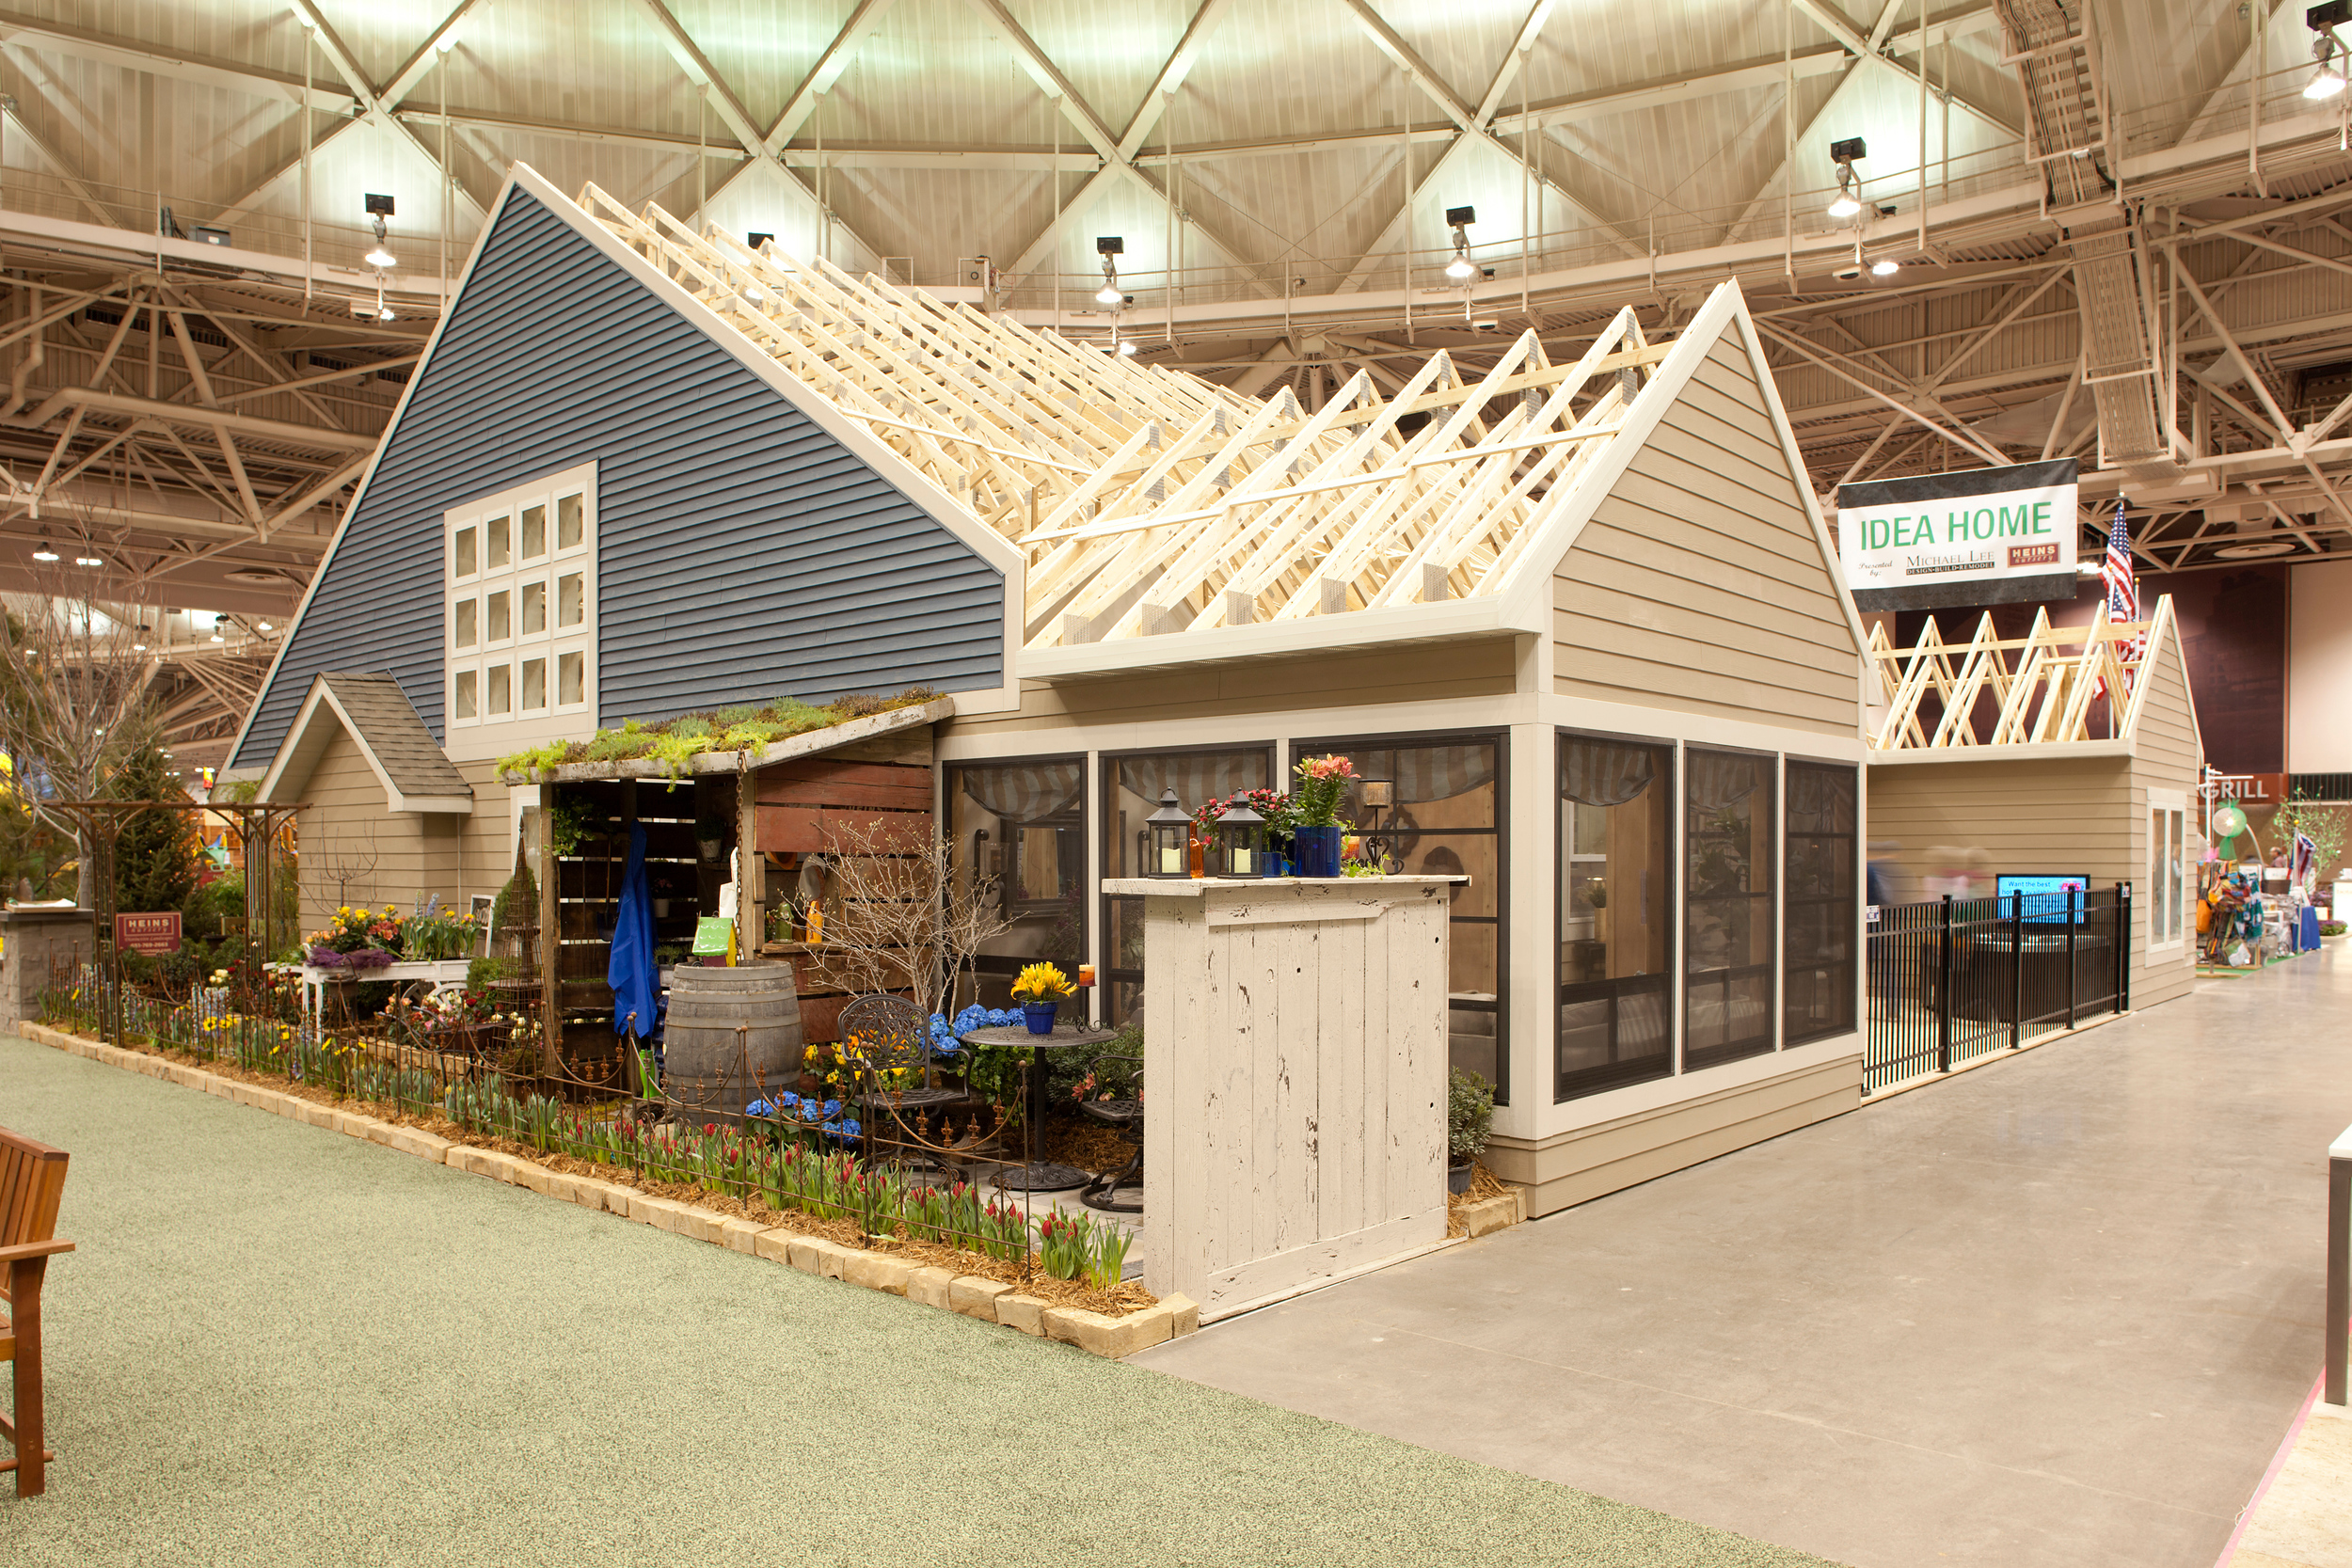 Idea Home built in 3 days for the Spring 2013 Home& Garden Show MPLS